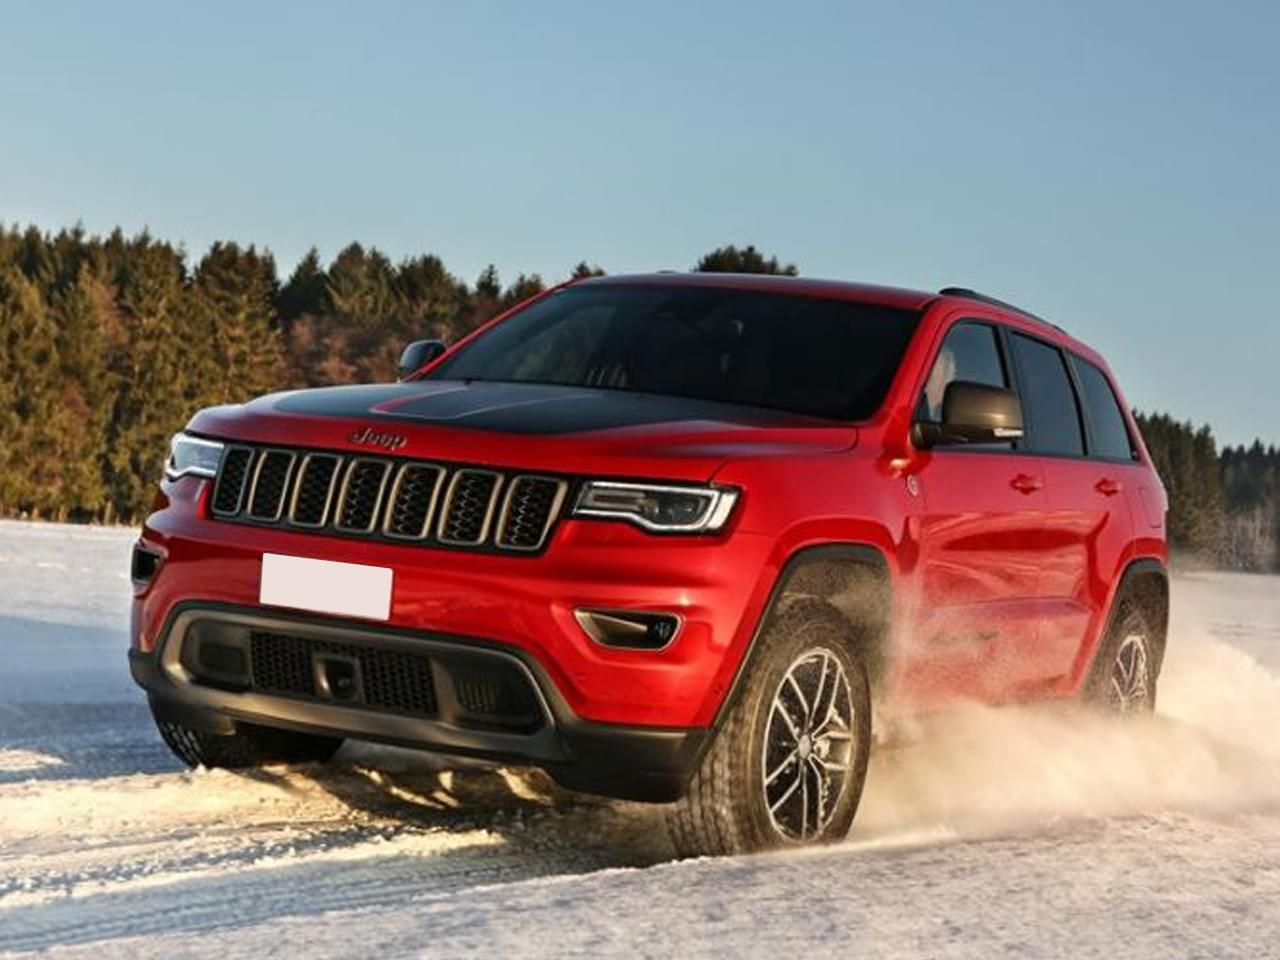 Jeep Grand Cherokee Trailhawk 3.0l V6